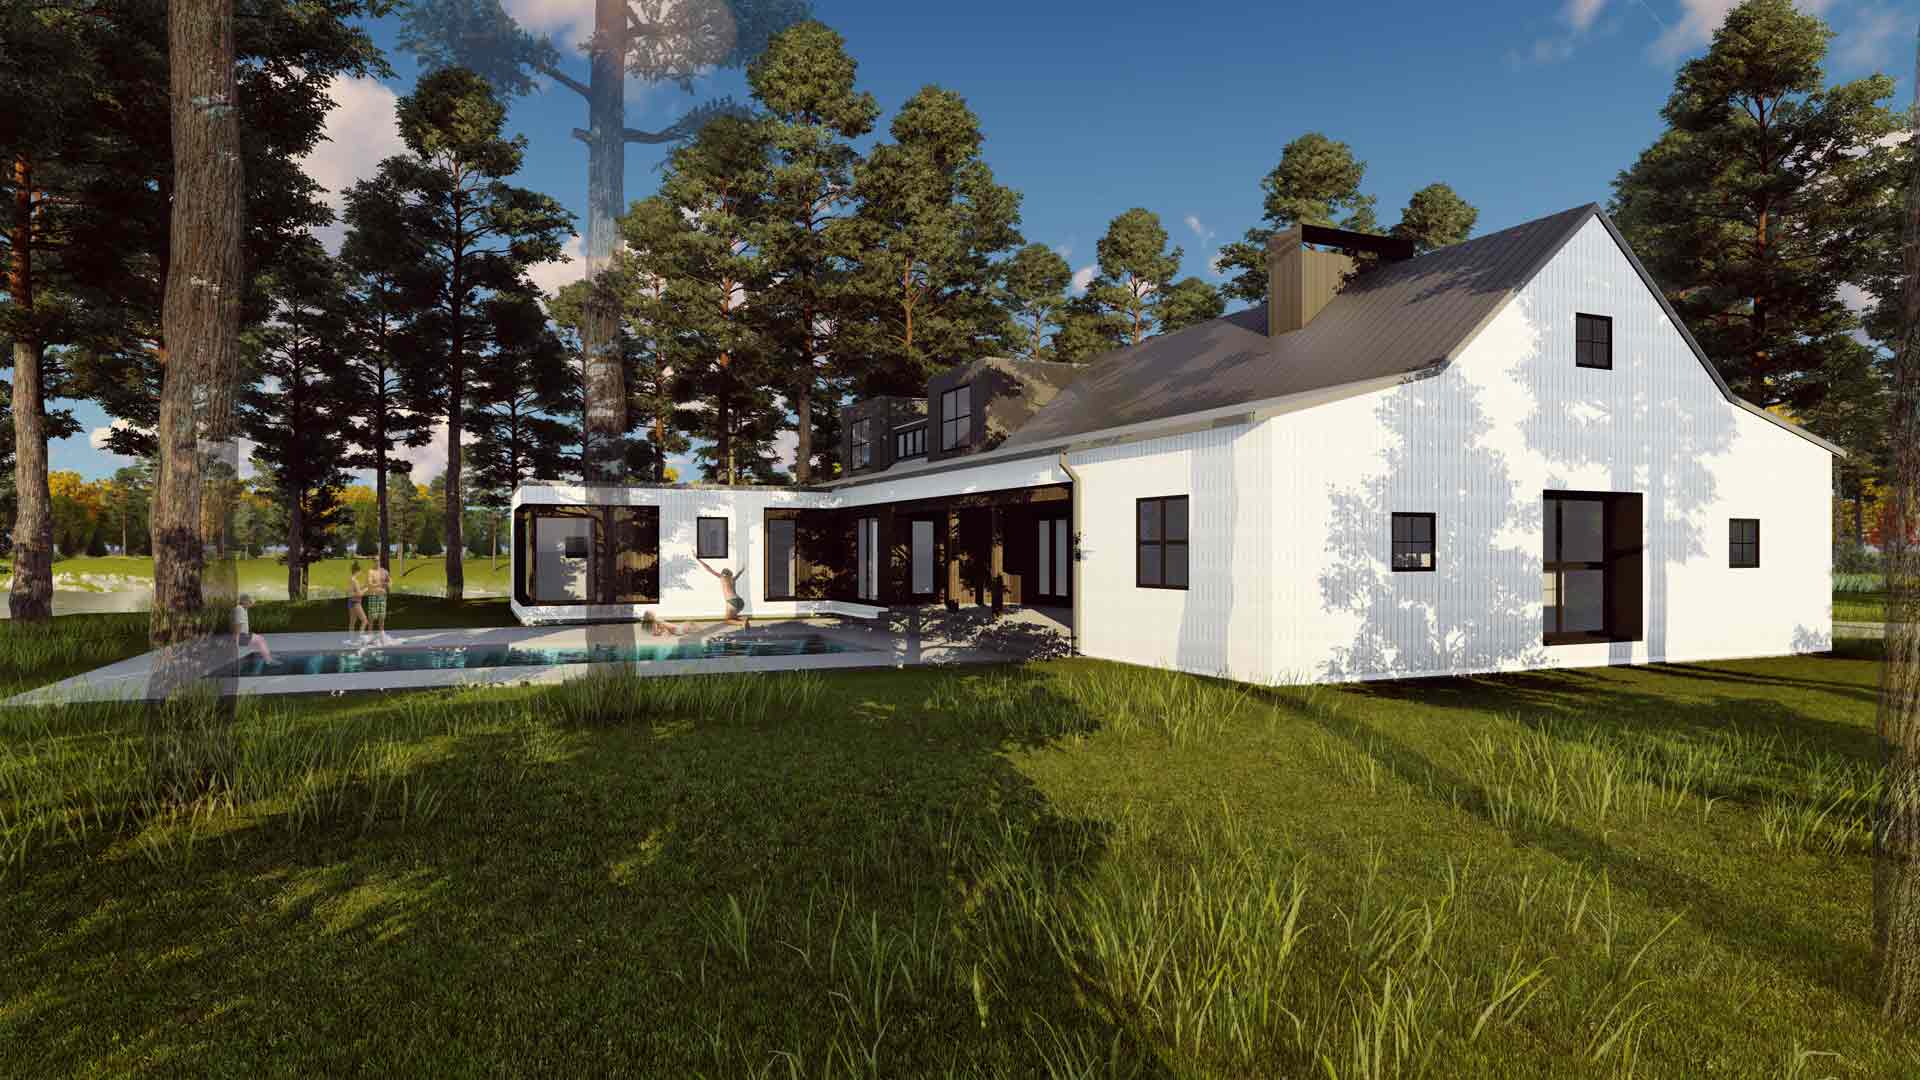 New Modern Farmhouse 3 HAUS Architecture